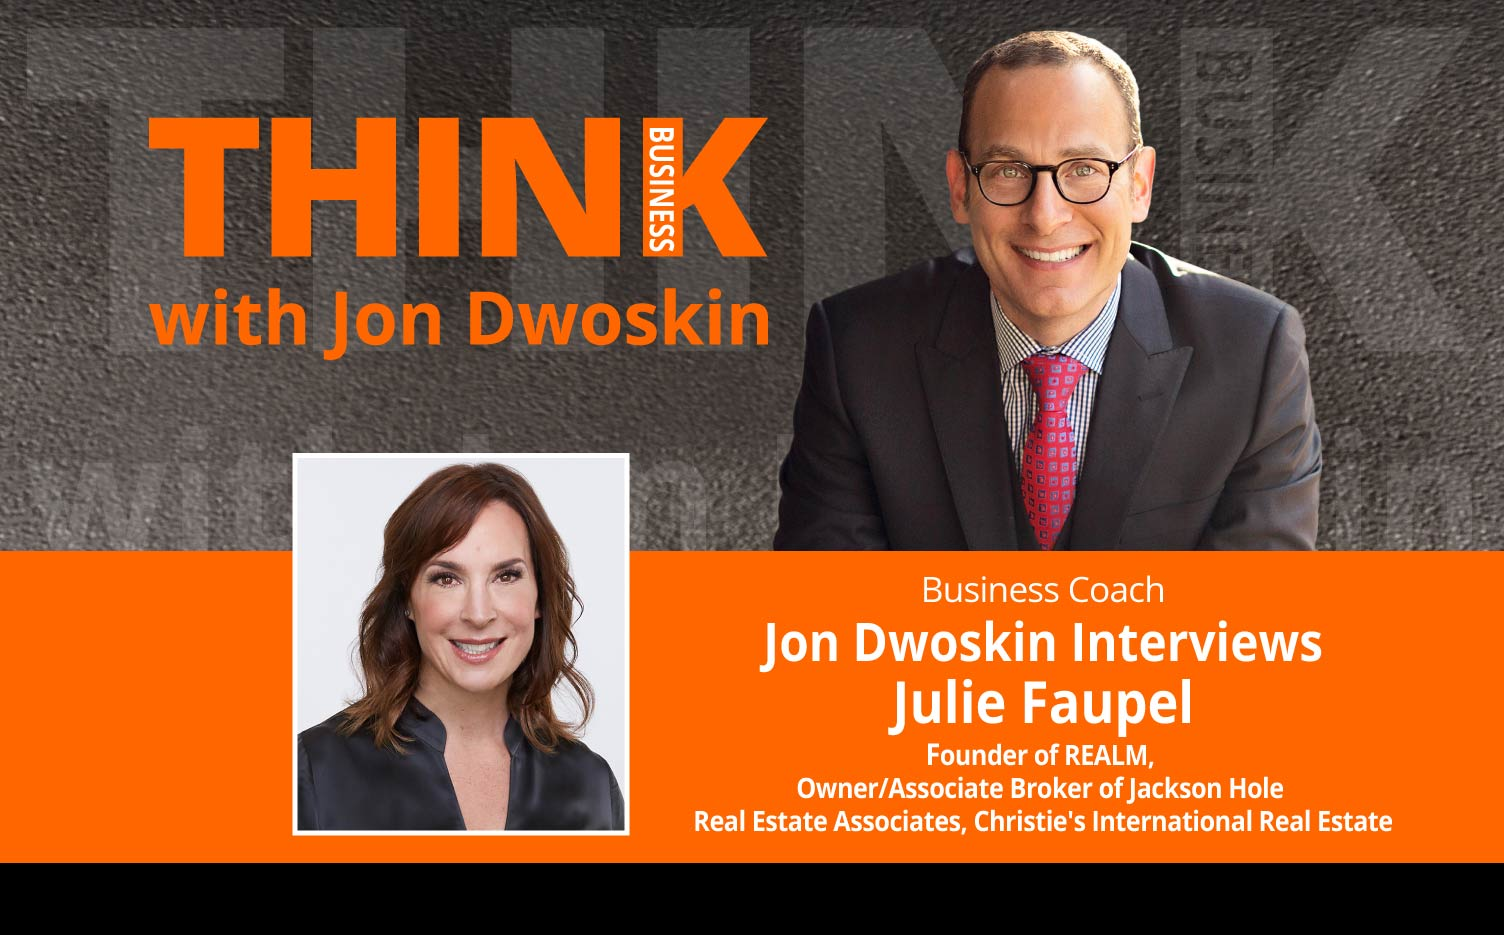 THINK Business Podcast: Jon Dwoskin Interviews Julie Faupel, Founder of REALM, Owner/Associate Broker of Jackson Hole Real Estate Associates, Christie's International Real Estate